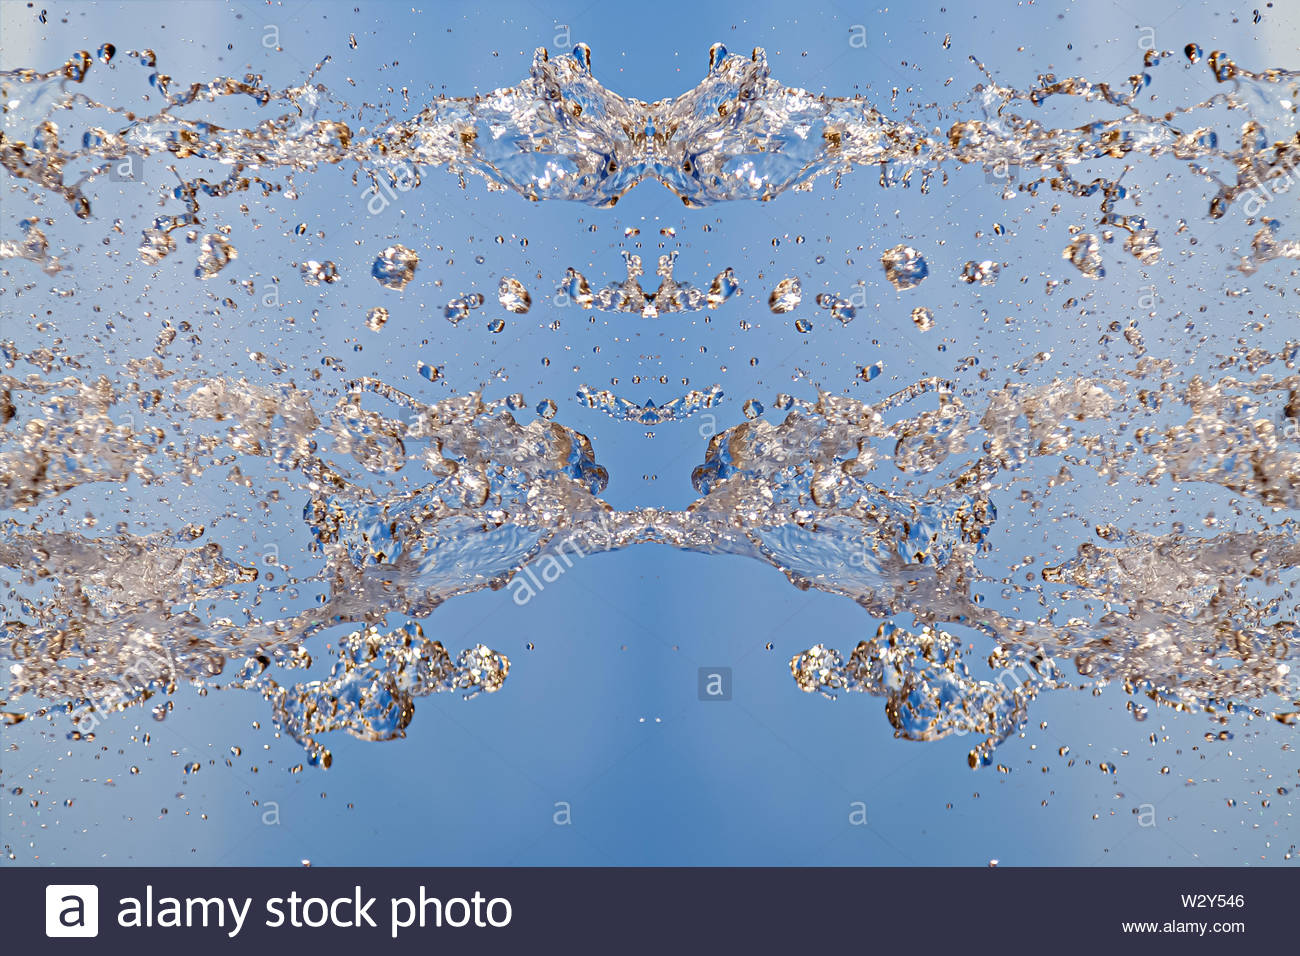 Symmetrical pattern of stopped water droplets with transparent 1300x956